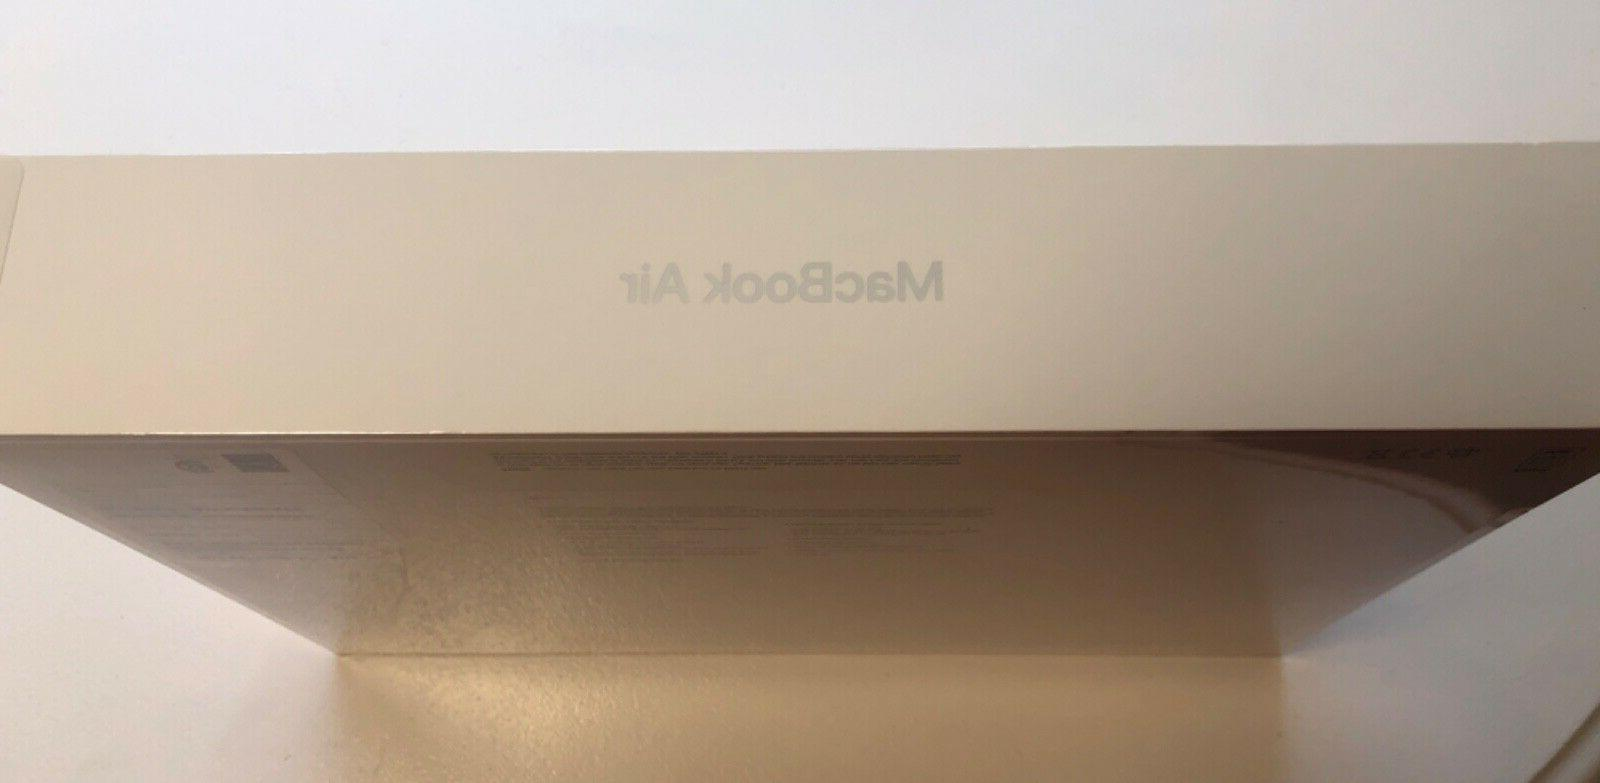 "NEW Apple MacBook Air 13.3"" MVFK2LL/A 128GB i5 Laptop"